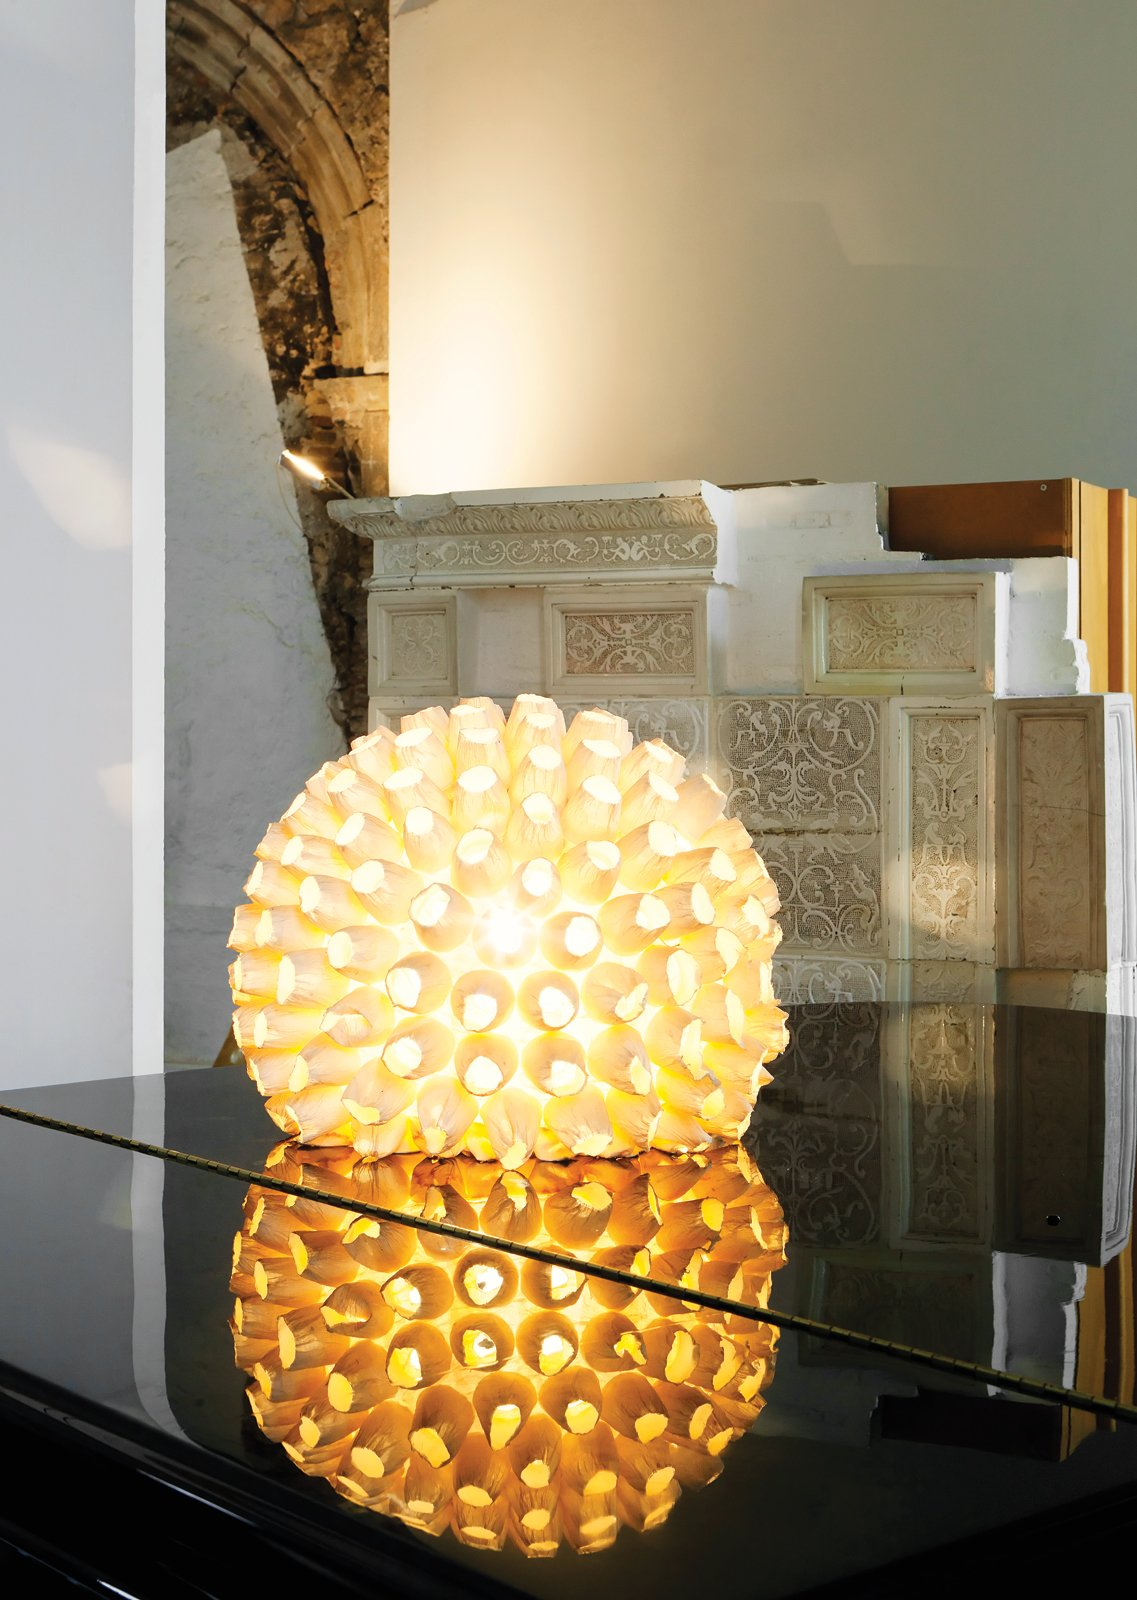 The glowing anemone-like lamp is from Vinçon in Barcelona.  60+ Modern Lighting Solutions by Dwell from The Barcelona Home Like No Other